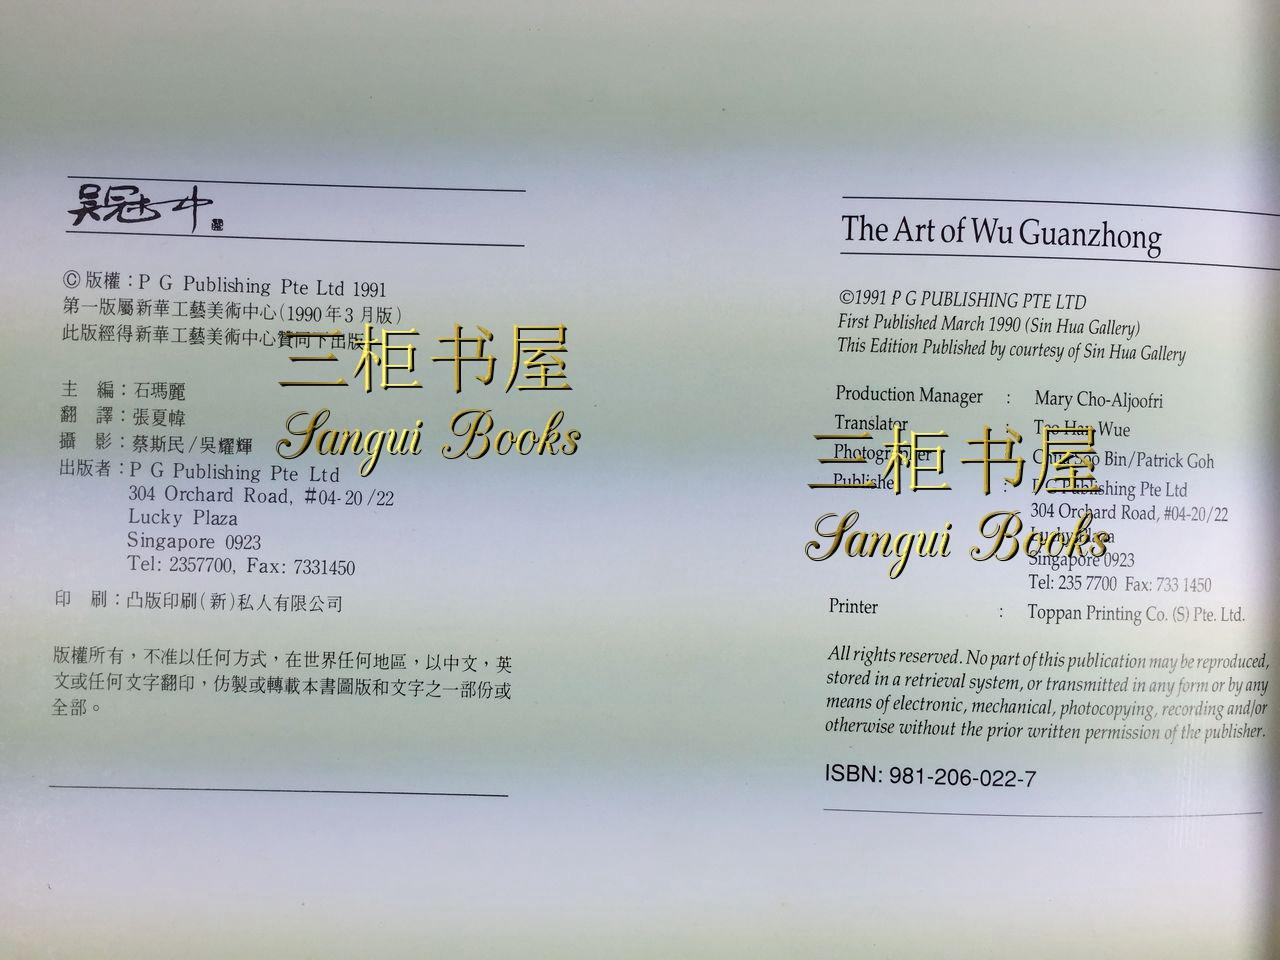 The Art of Wu Guanzhong  Catalogue of